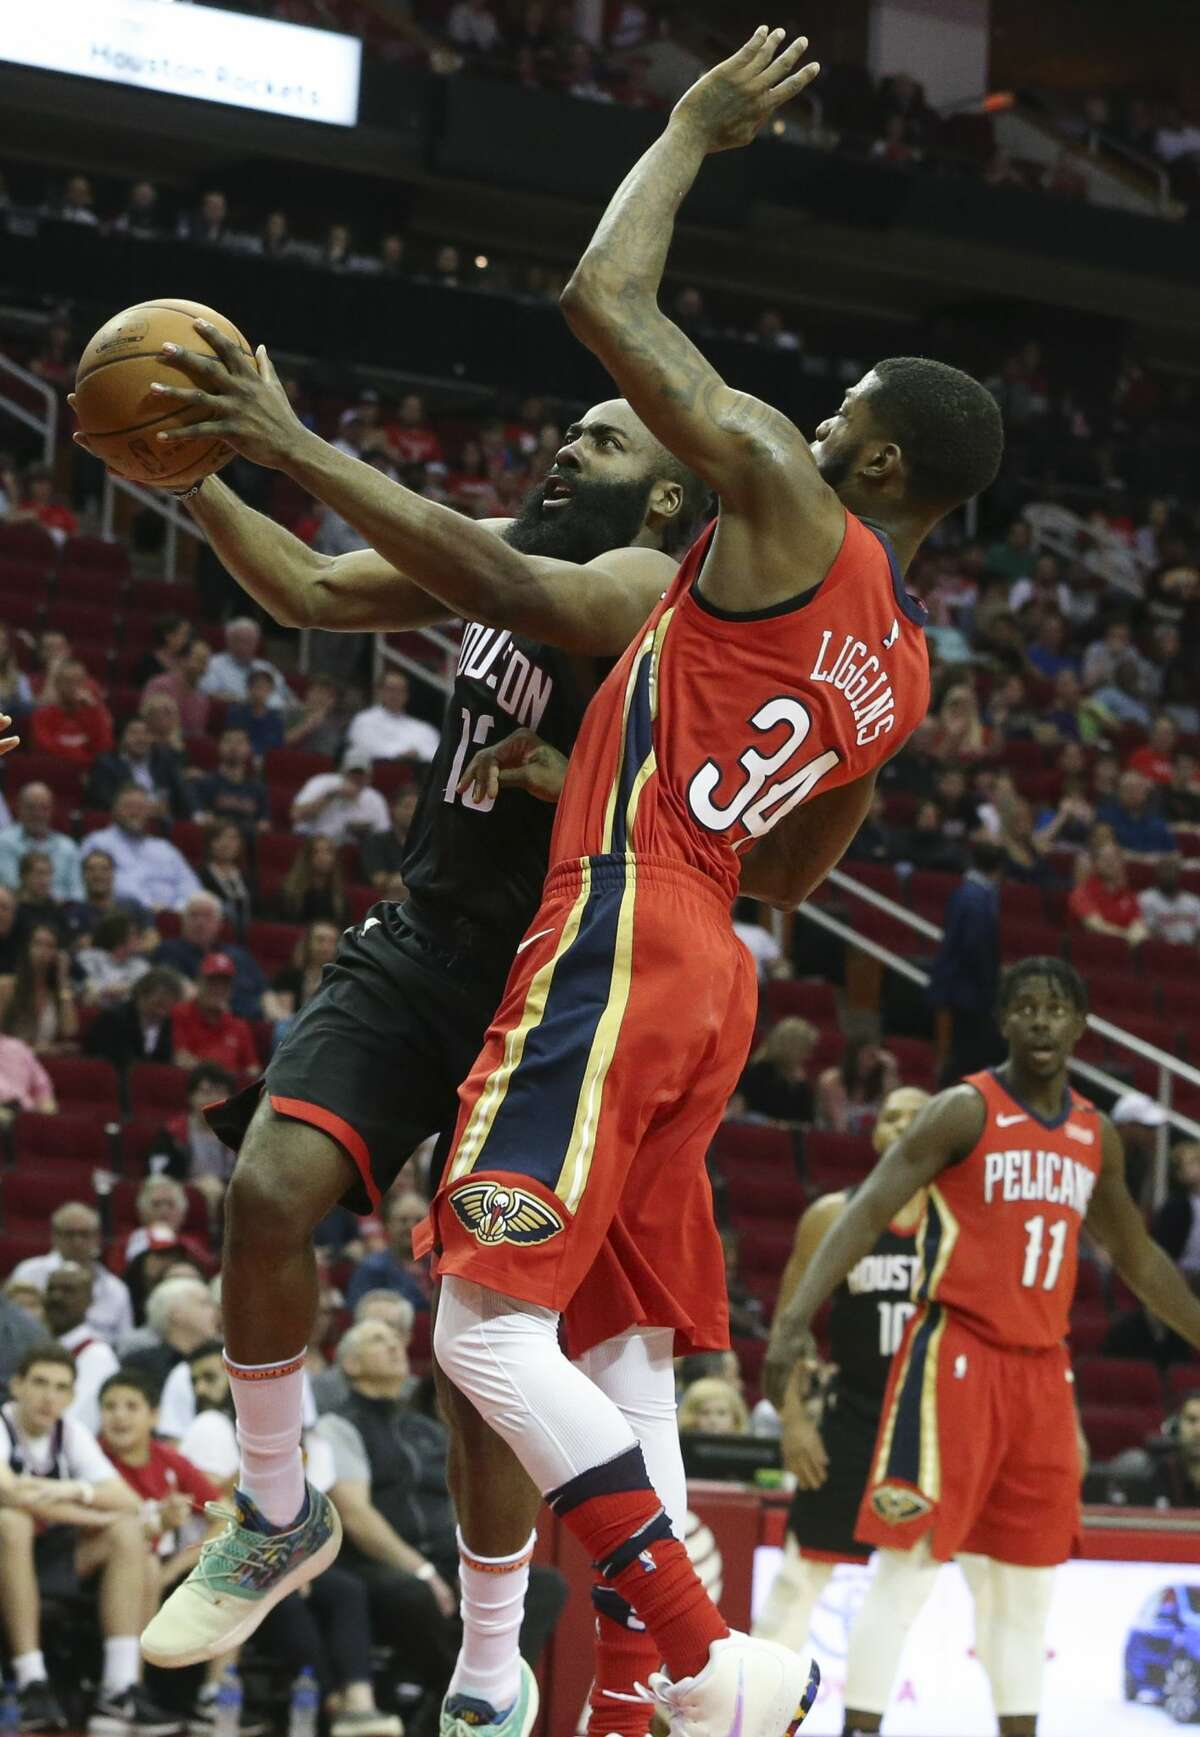 Houston Rockets guard James Harden (13) passes New Orleans Pelicans guard DeAndre Liggins (34) for a lay up during the first quarter of the NBA game at Toyota Center on Saturday, March 24, 2018, in Houston. ( Yi-Chin Lee / Houston Chronicle )